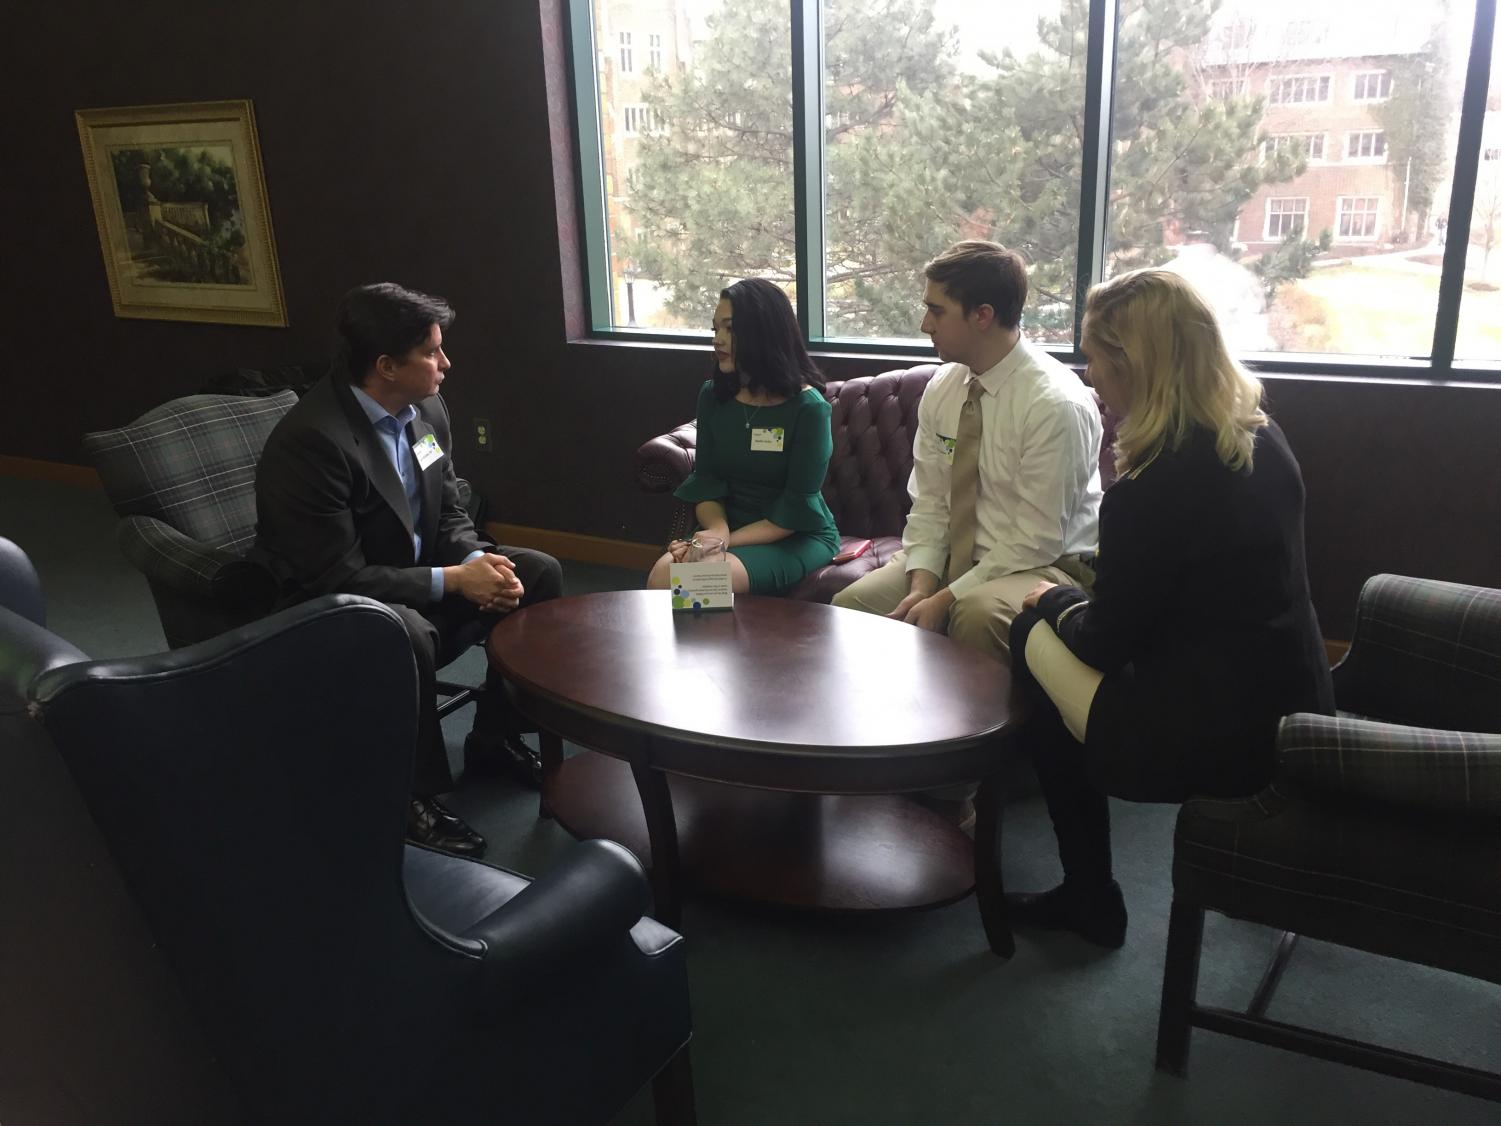 Trustee Lev Kubiak, left, speaks with students, from left, Noelle Zesky, Austin Shinhearl and Hannah Gibson at the Board of Trustees Student Meet and Greet on Feb. 17.